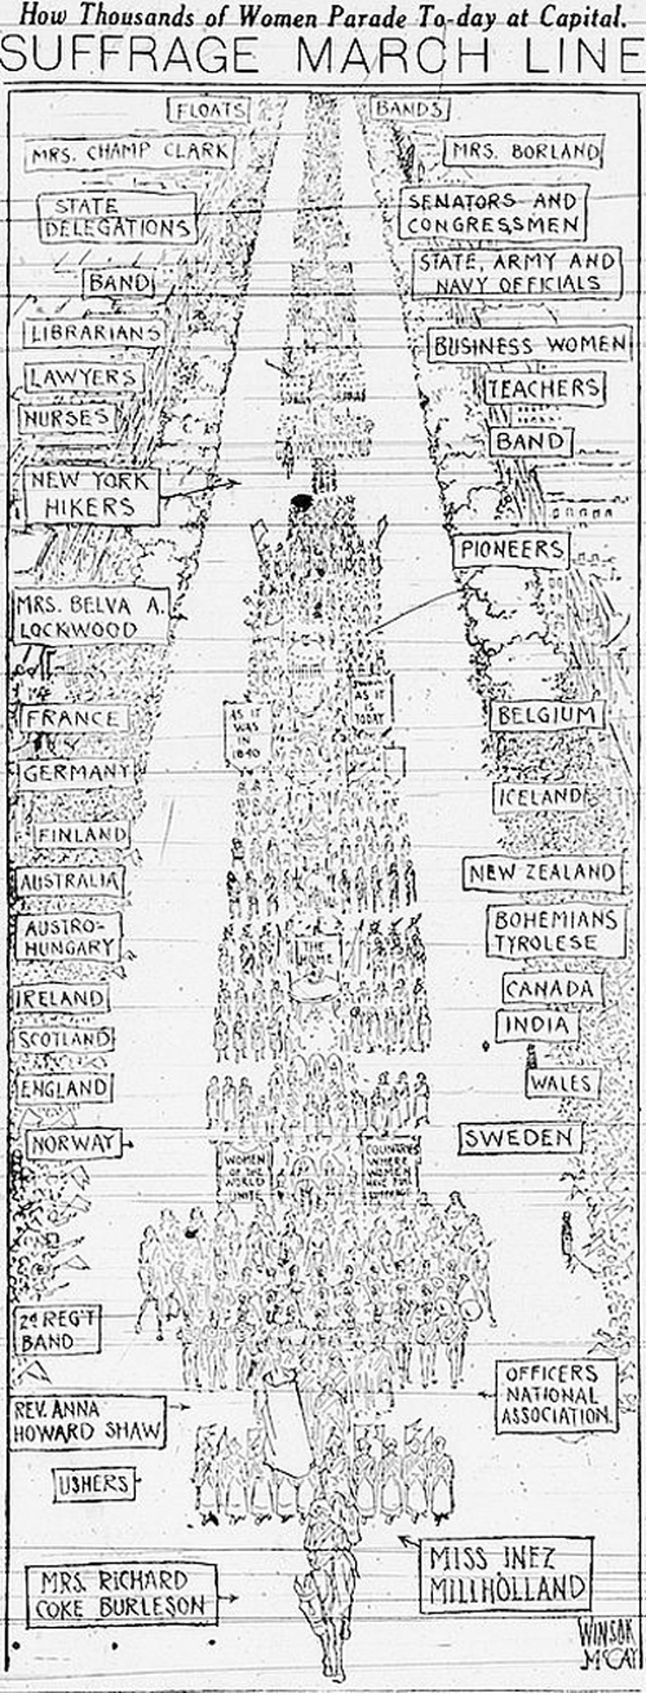 On March 3, 1913, thousands of people marched from the Capitol in Washington, D.C., to support woman suffrage in the United States.